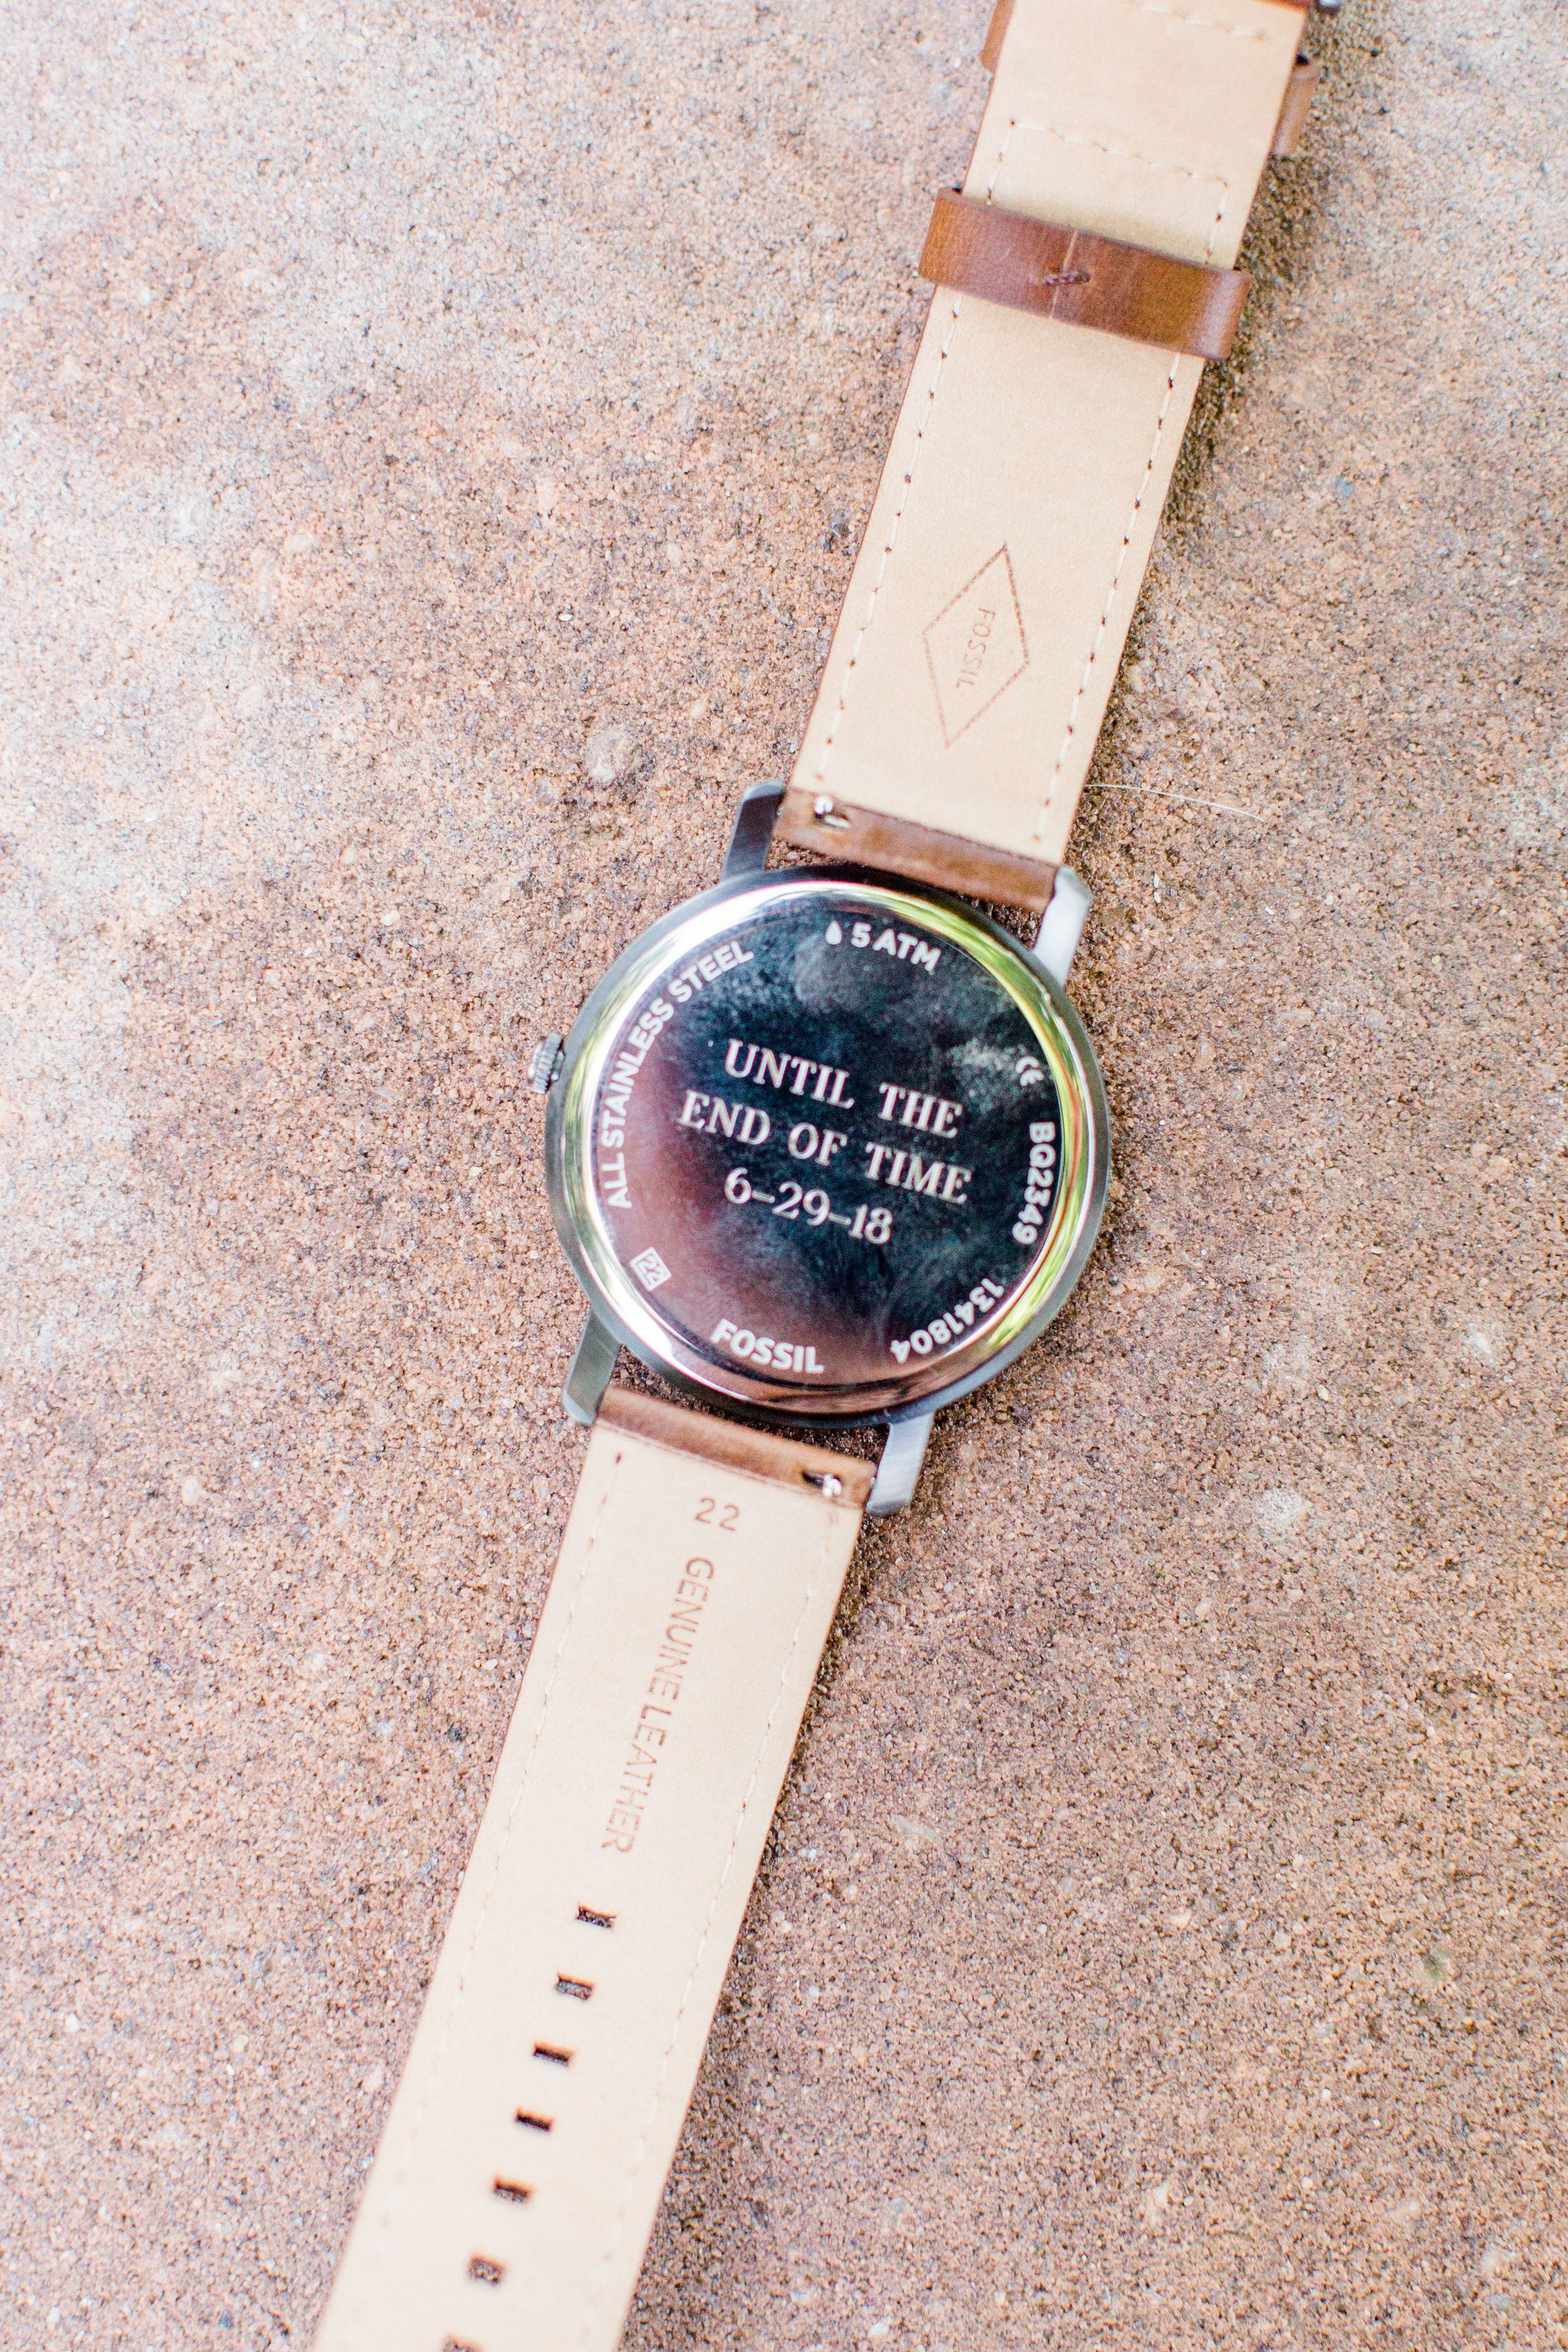 Gift From Bride To Groom Fossil Watch With Engraving Of Wedding Date Wedding Gifts For Groom Bride Gifts Bride And Groom Gifts